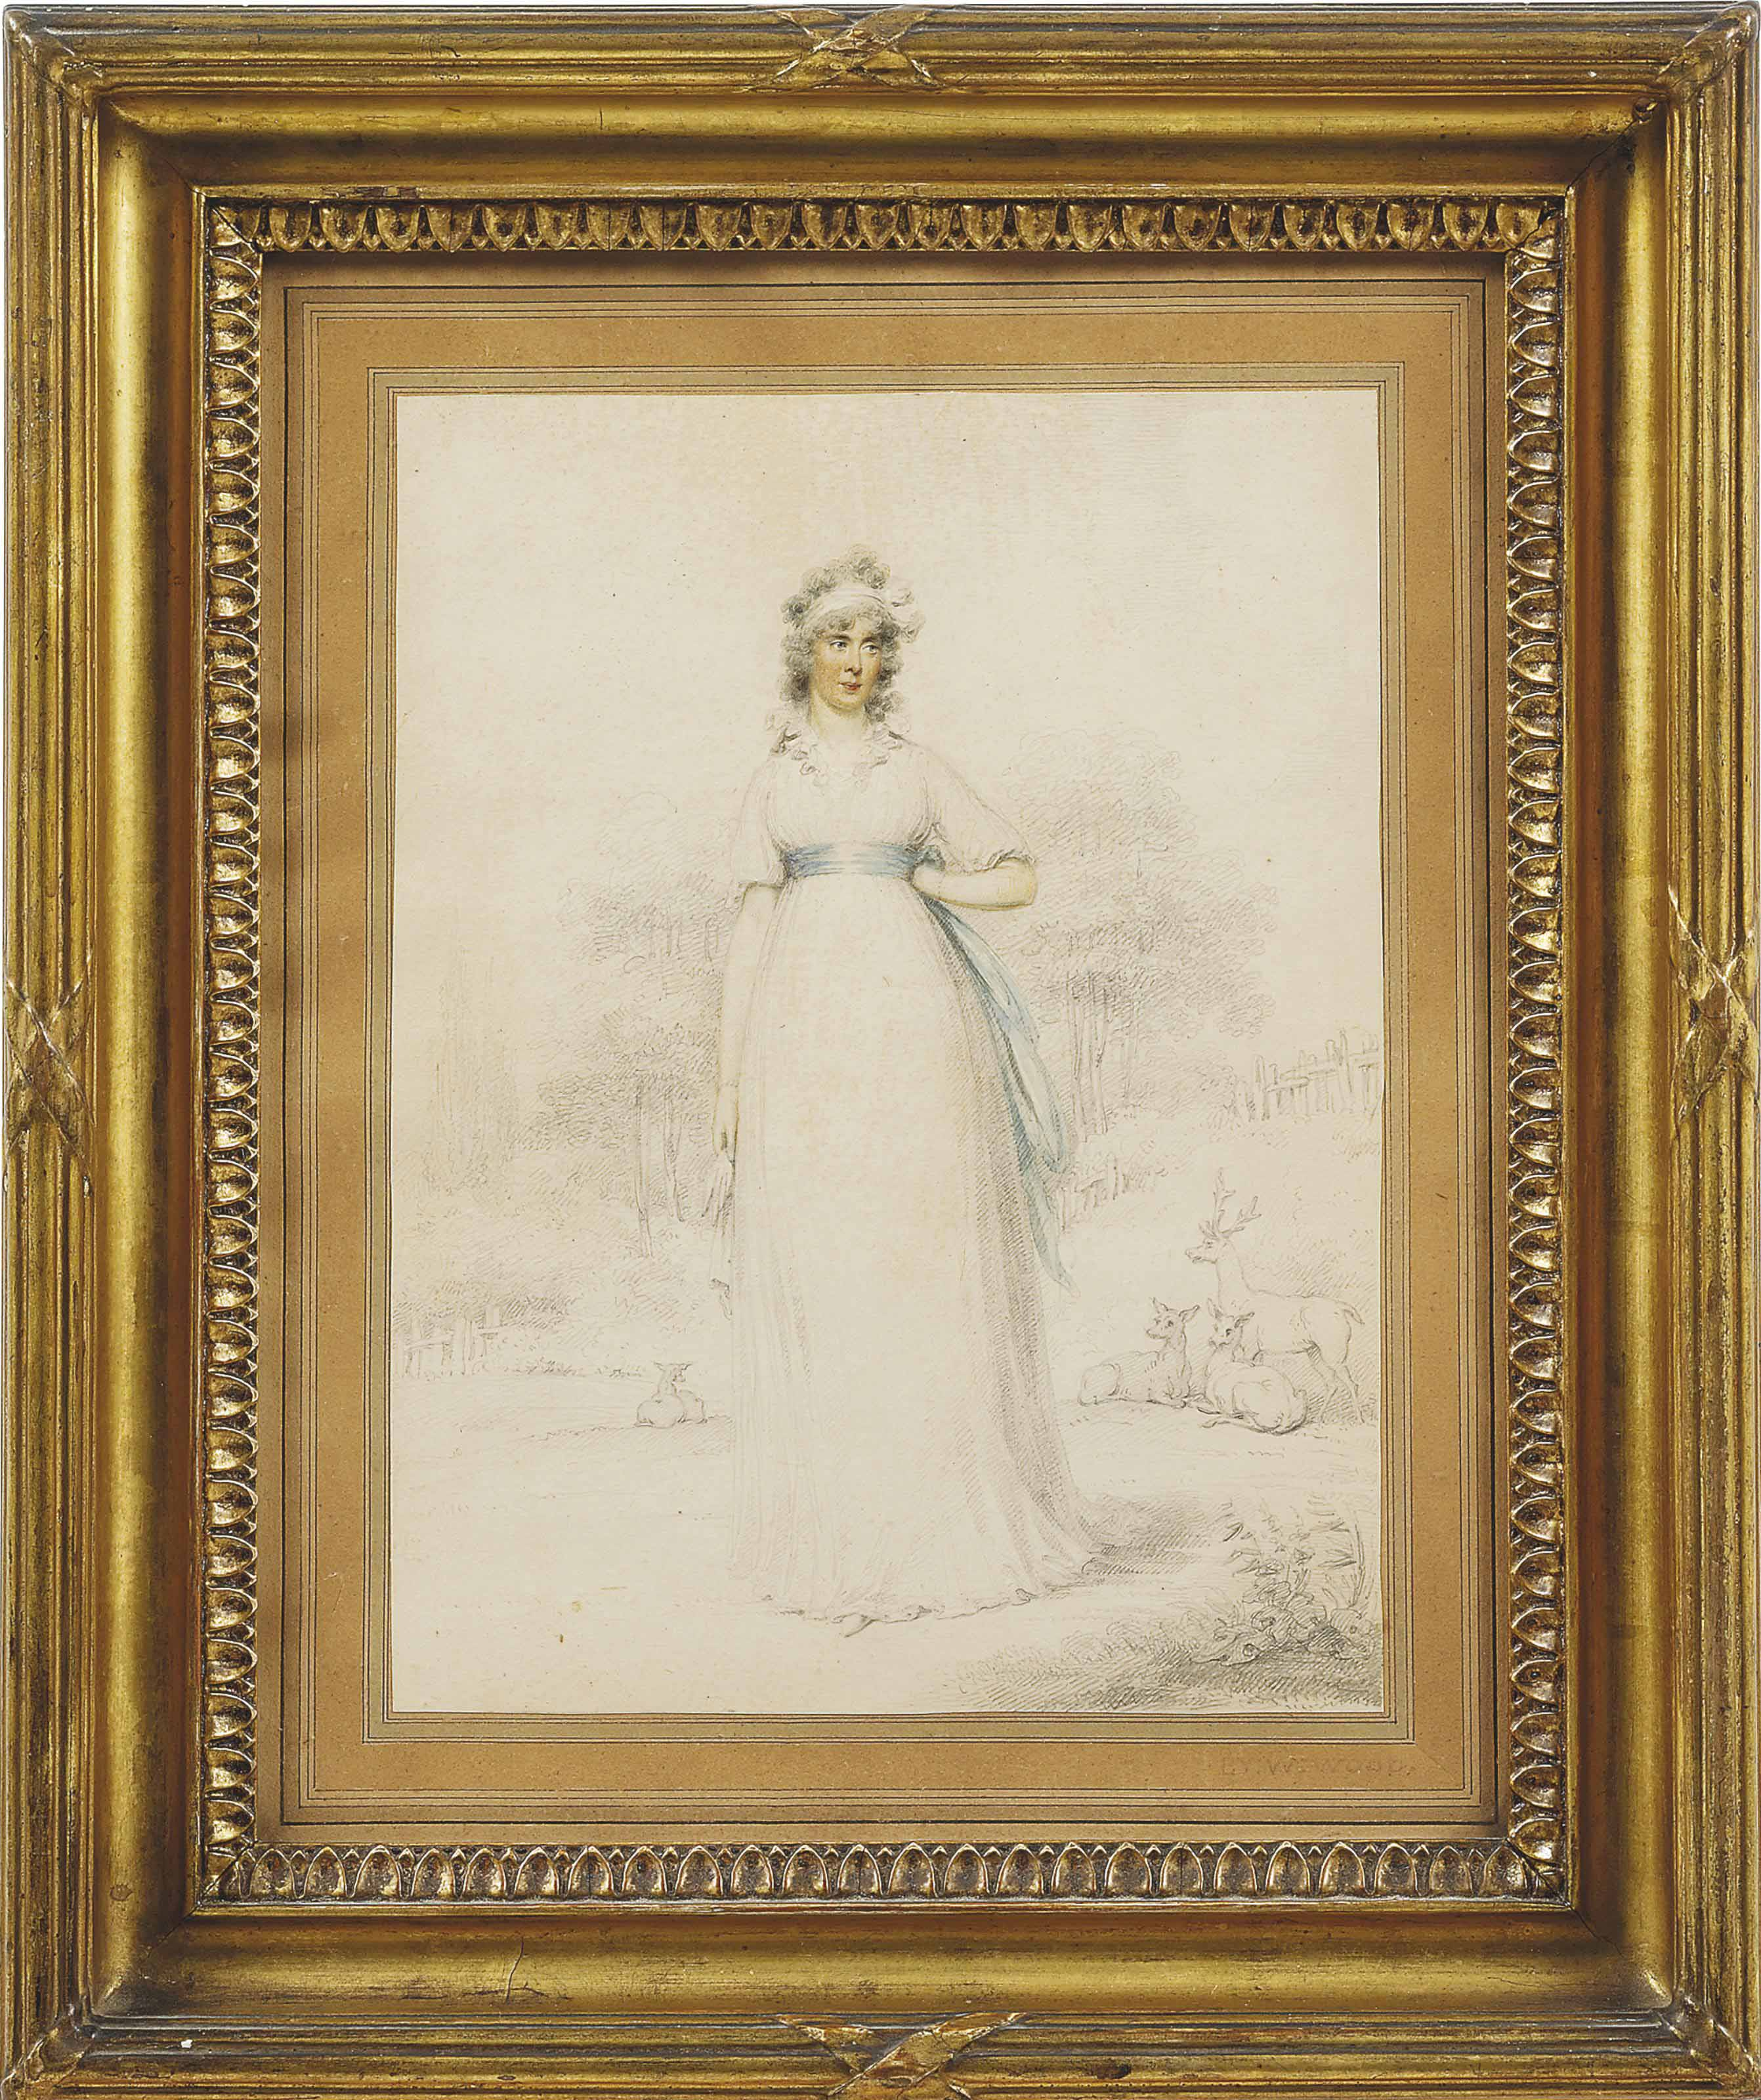 Portrait of Katherine, Countess of Mornington (1760-1851), full-length, in a white dress and blue sash, a landscape beyond